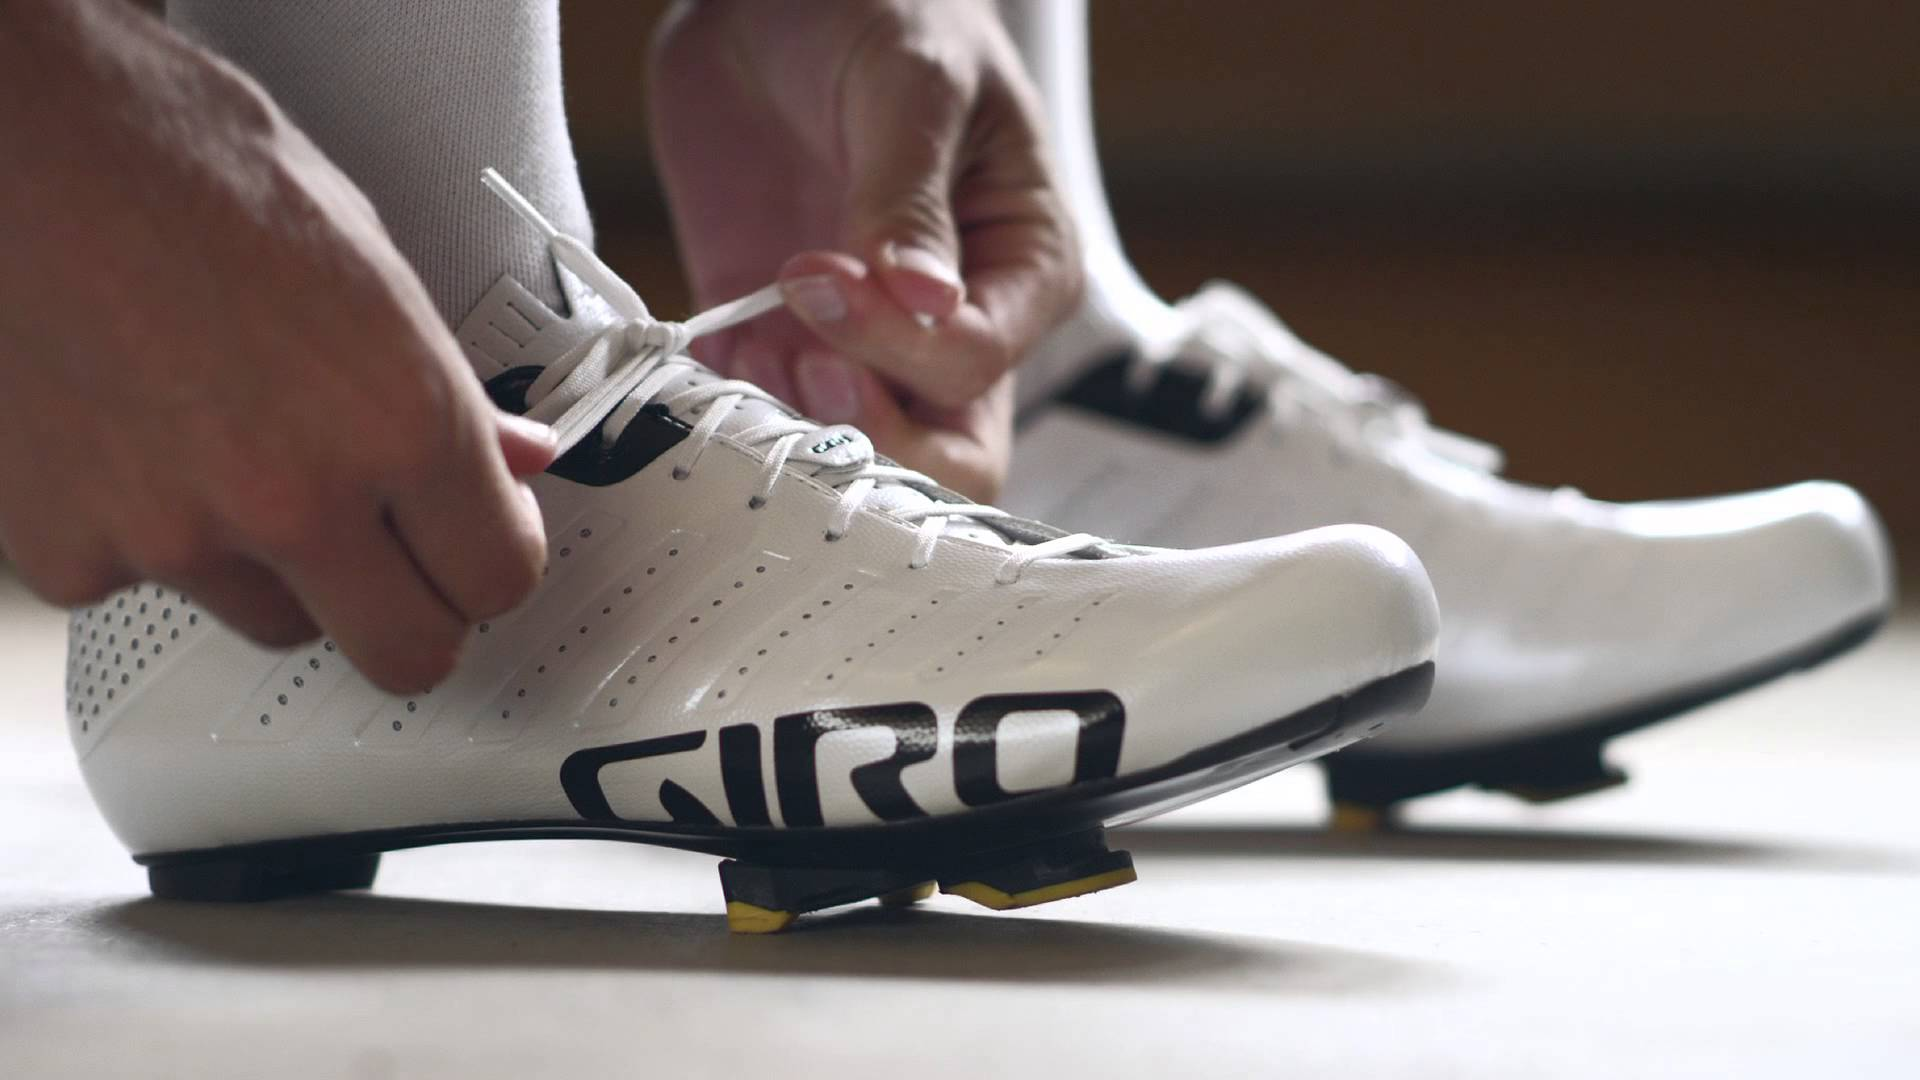 Taylor Phinney putting on giro empire slx road cycling shoes